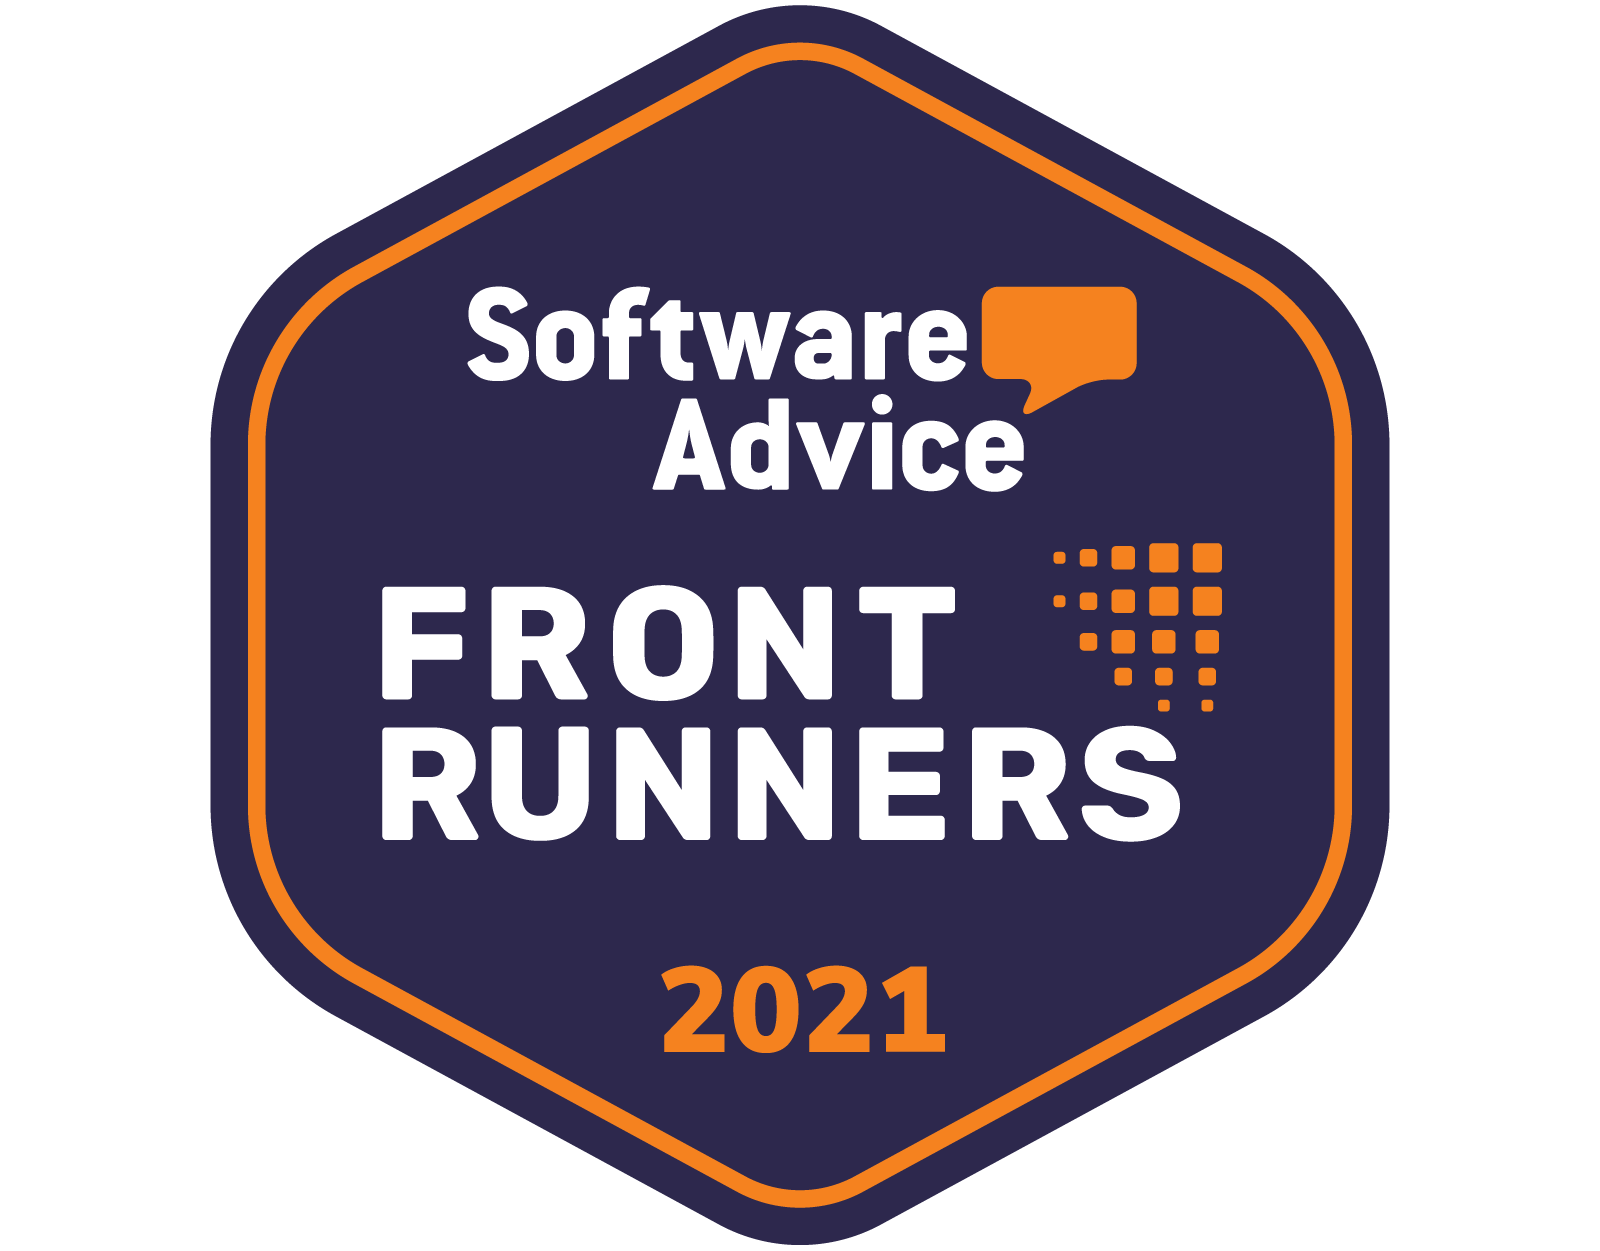 Software Advice Frontrunners for VoIP Mar-21